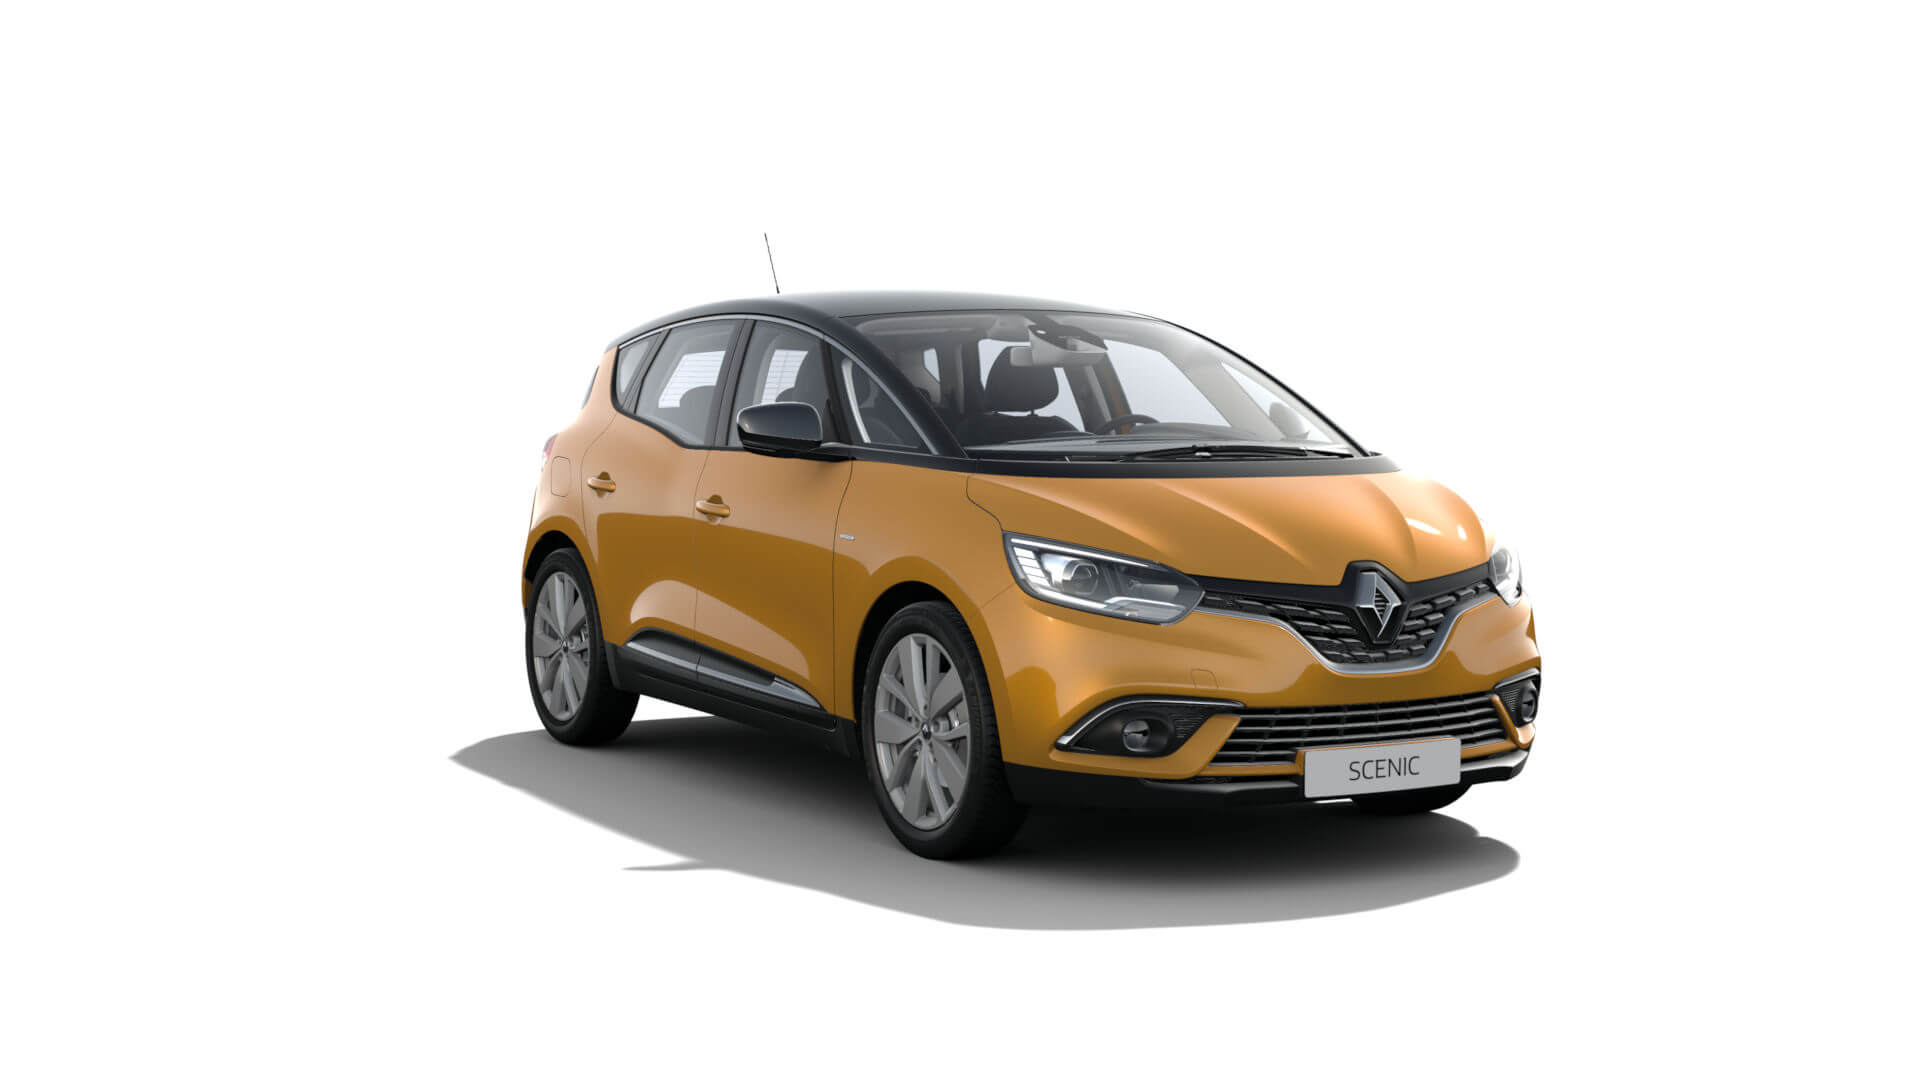 Automodell senfgelb - Renault Scenic - Renault Ahrens Hannover